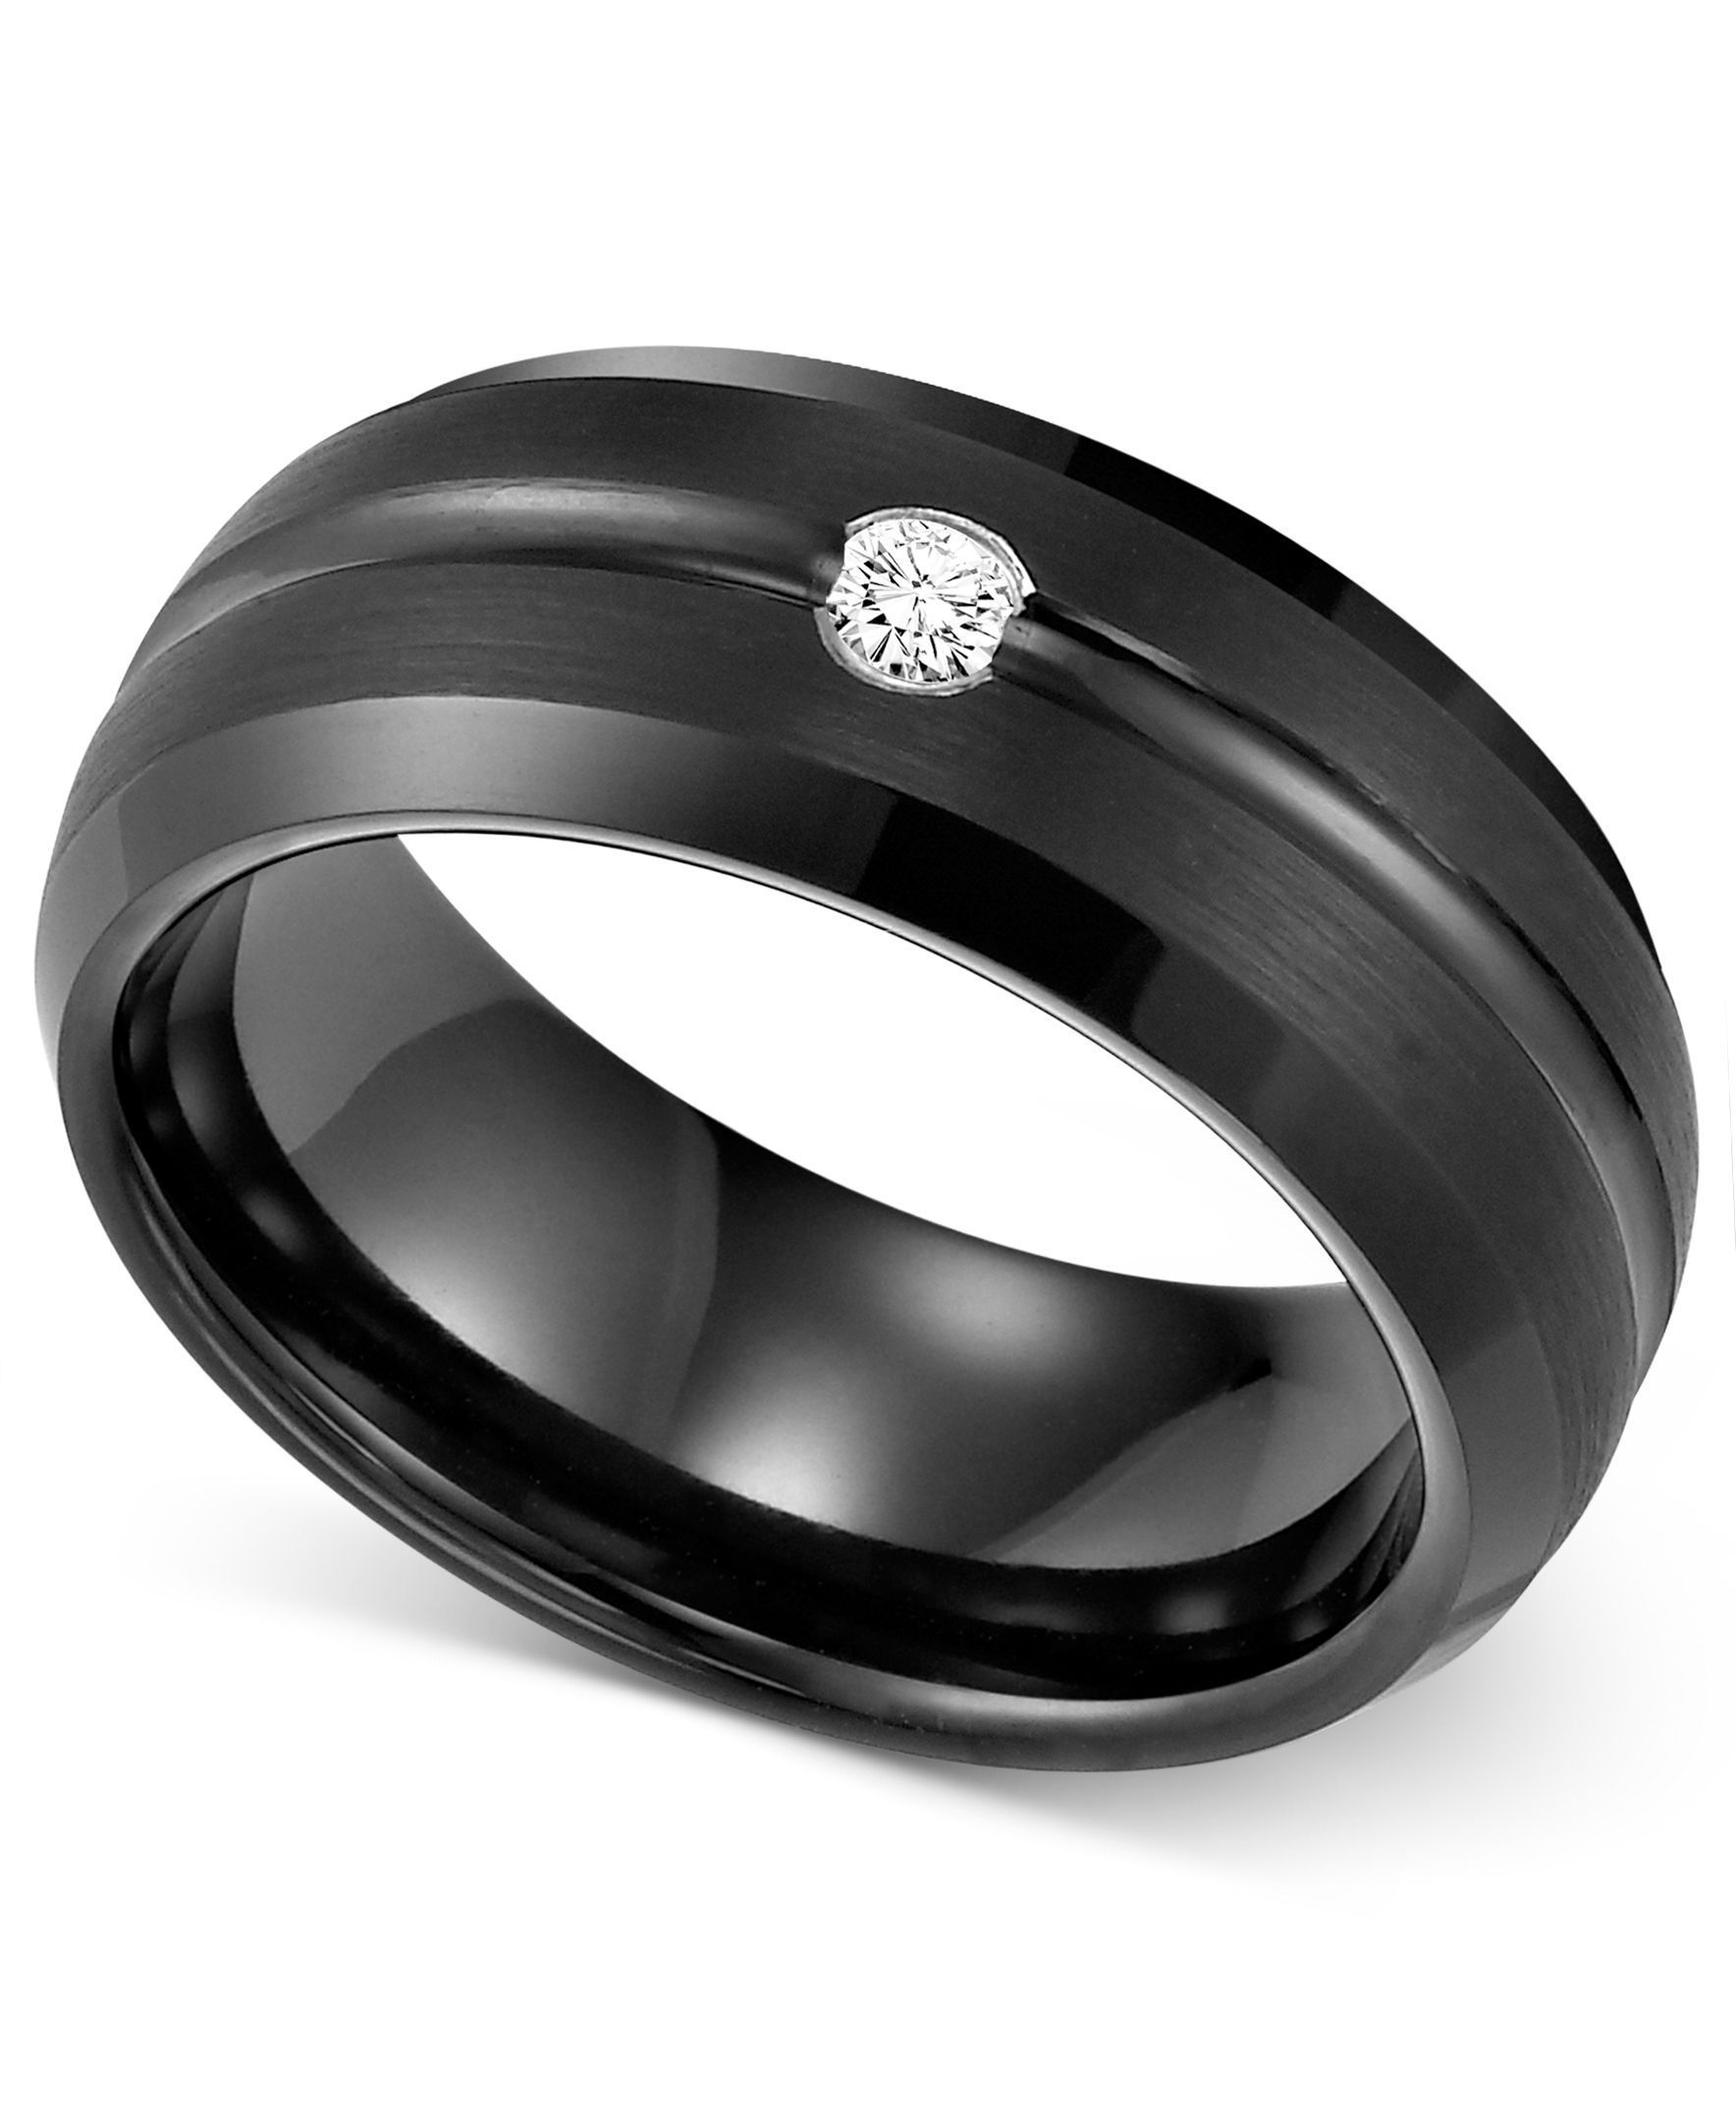 Walmart Wedding Bands.Mens Wedding Rings Walmart The Best Black Friday Jewelry